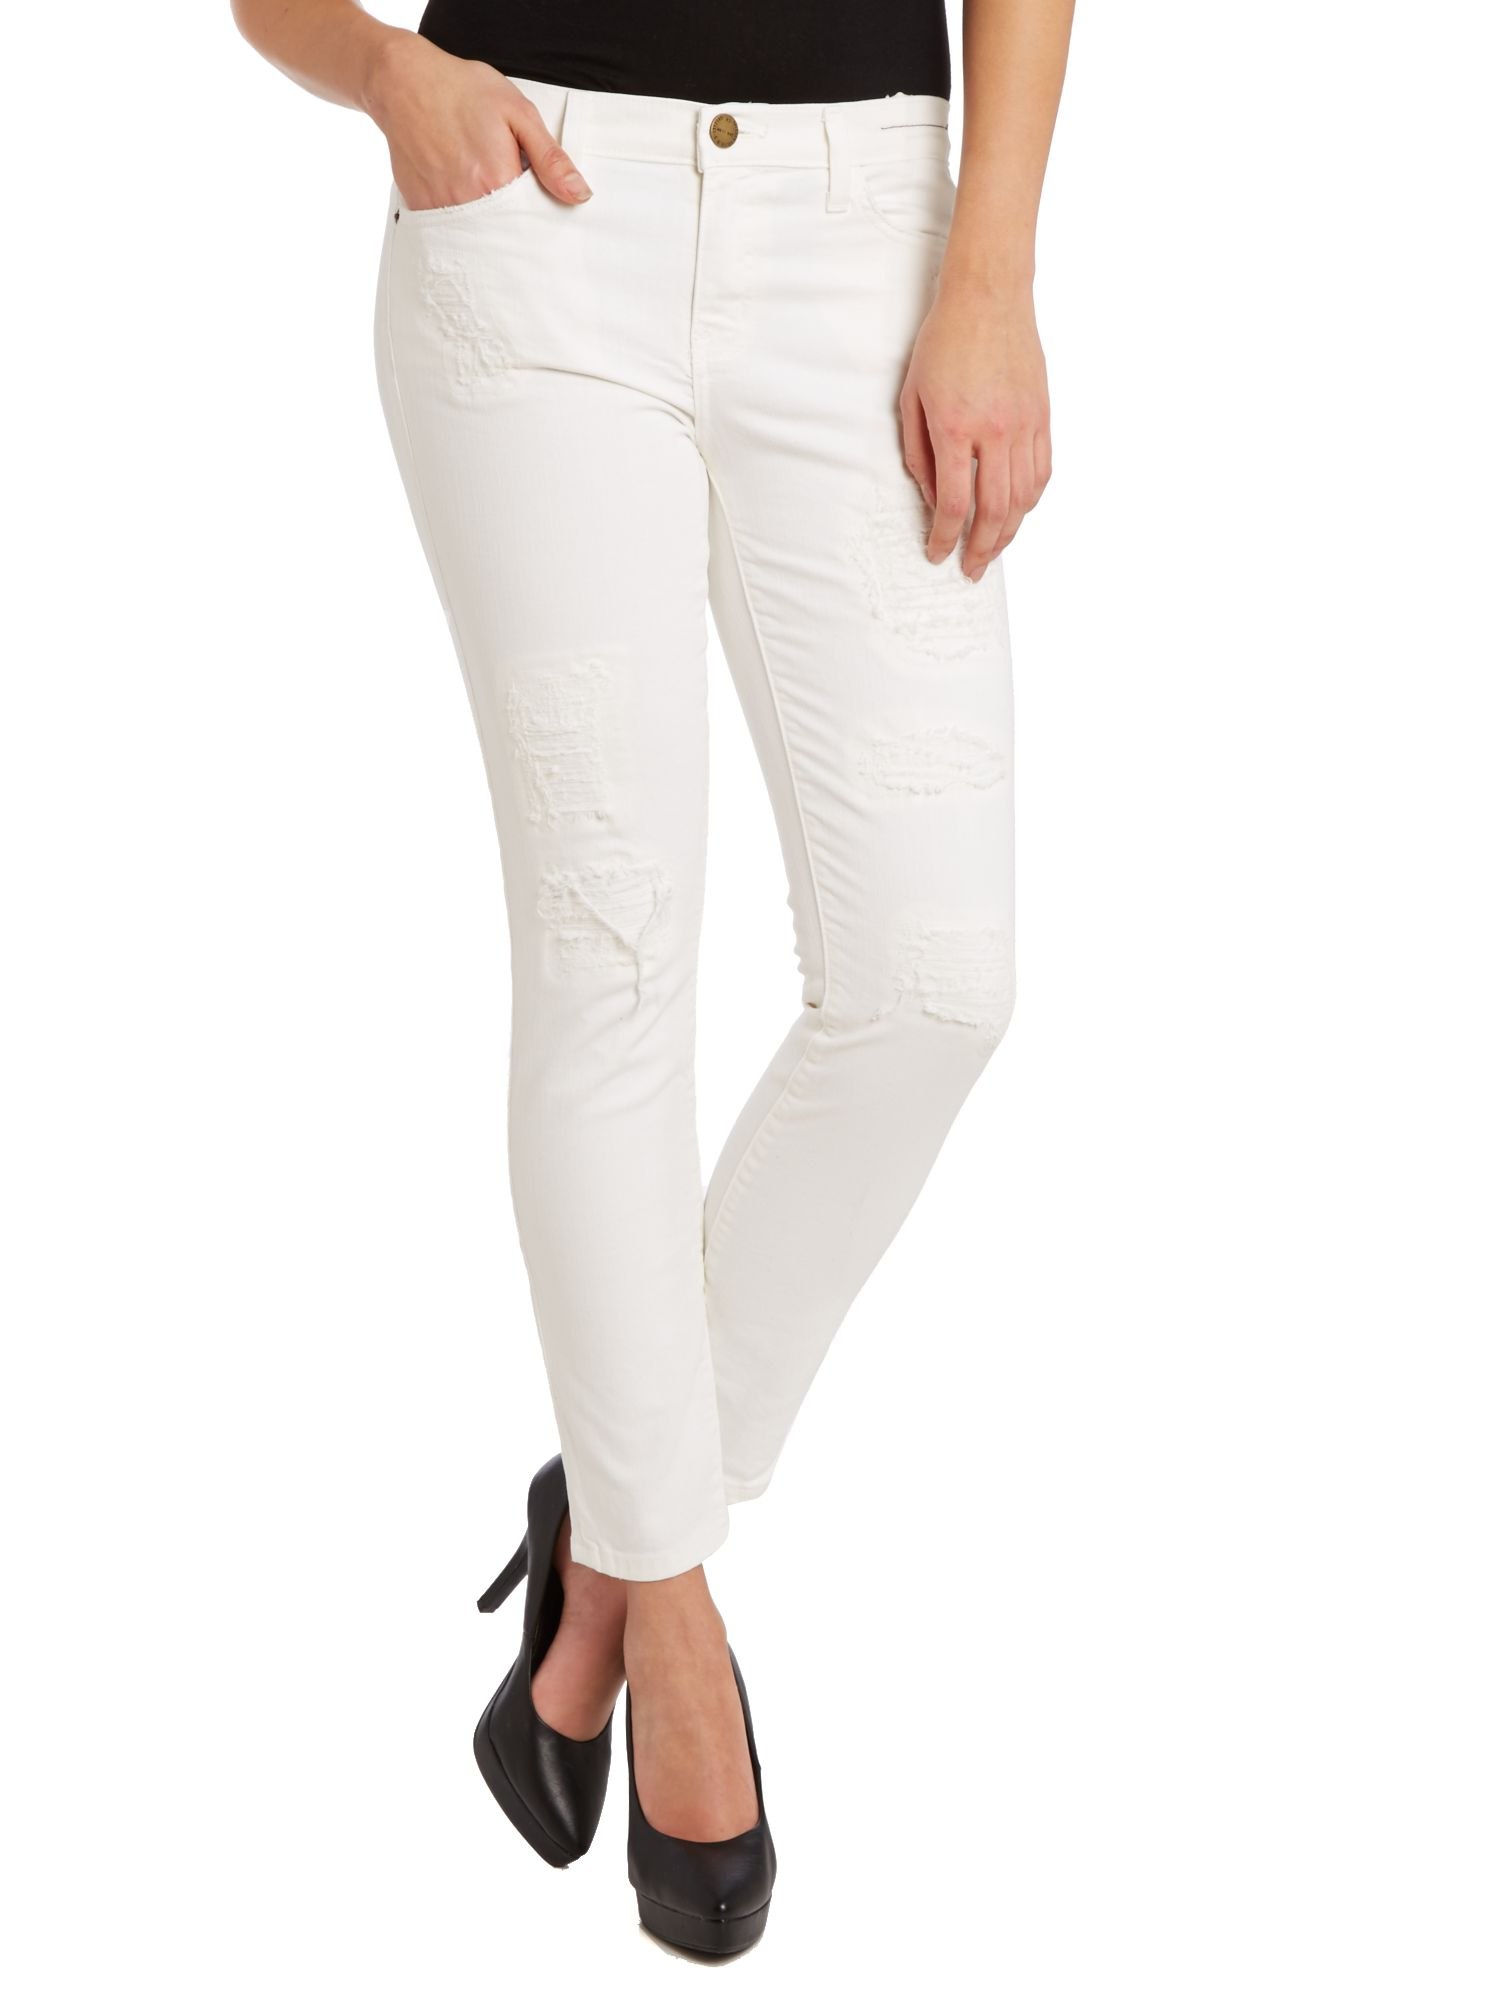 The stiletto skinny jeans in Dirty White